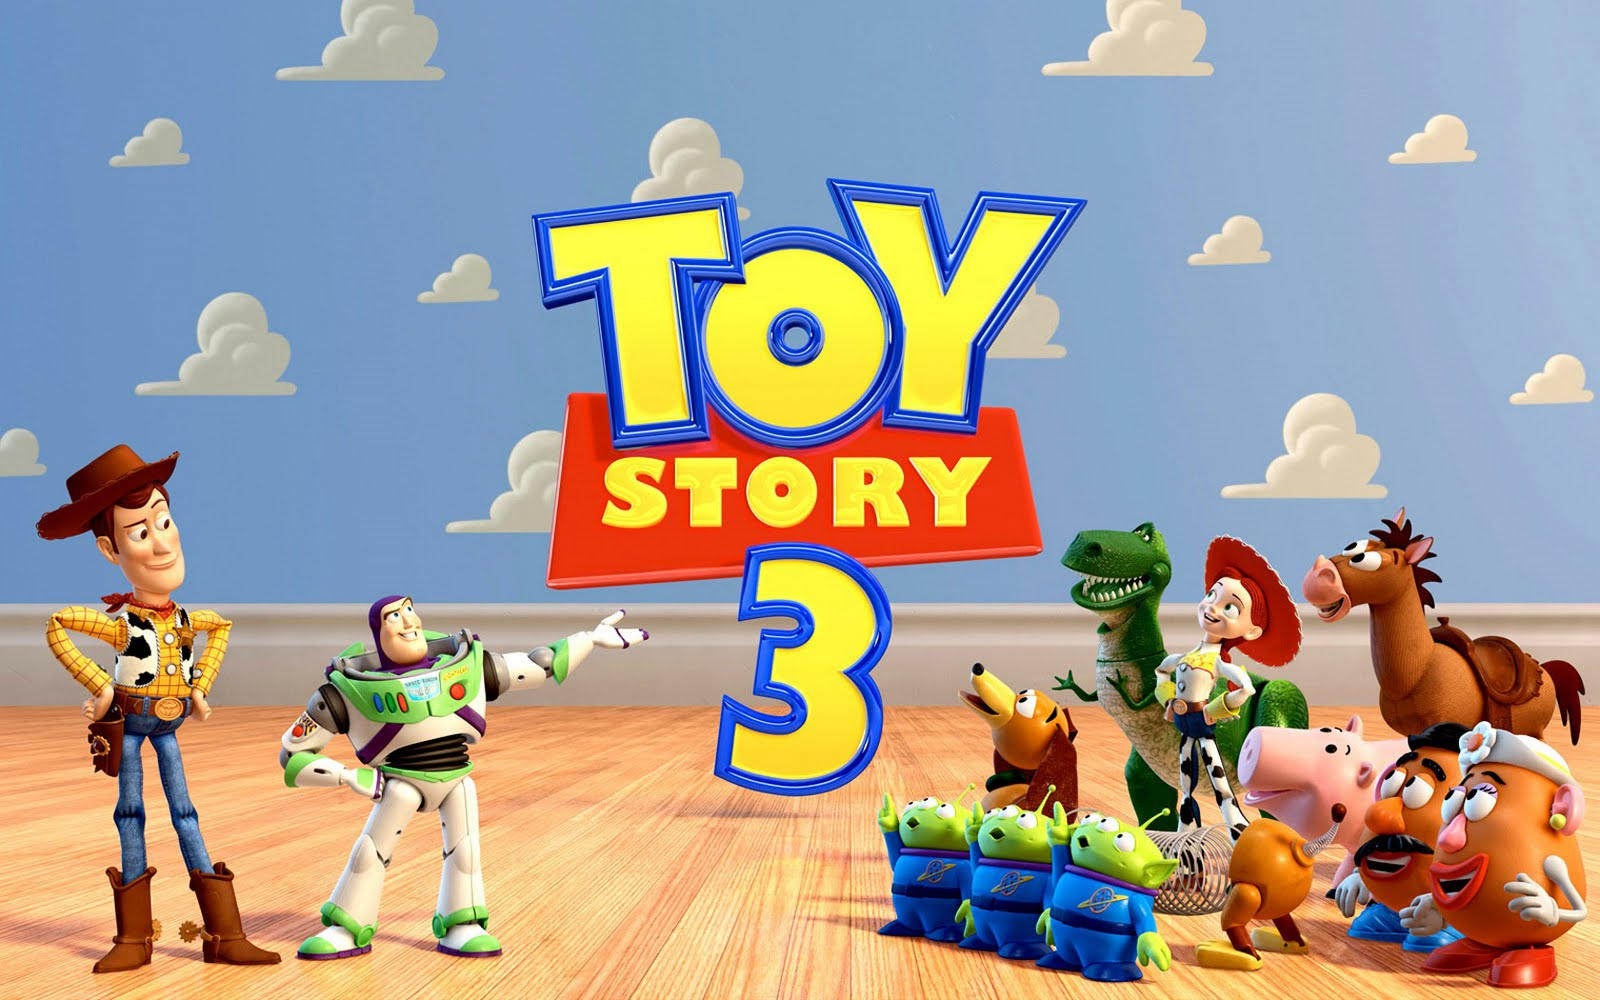 http://3.bp.blogspot.com/_E6ggW2Ks020/TCfpJyYedXI/AAAAAAAAB8A/Th6V6Z84Q-4/s1600/wallpapers_toy_story-3.jpg